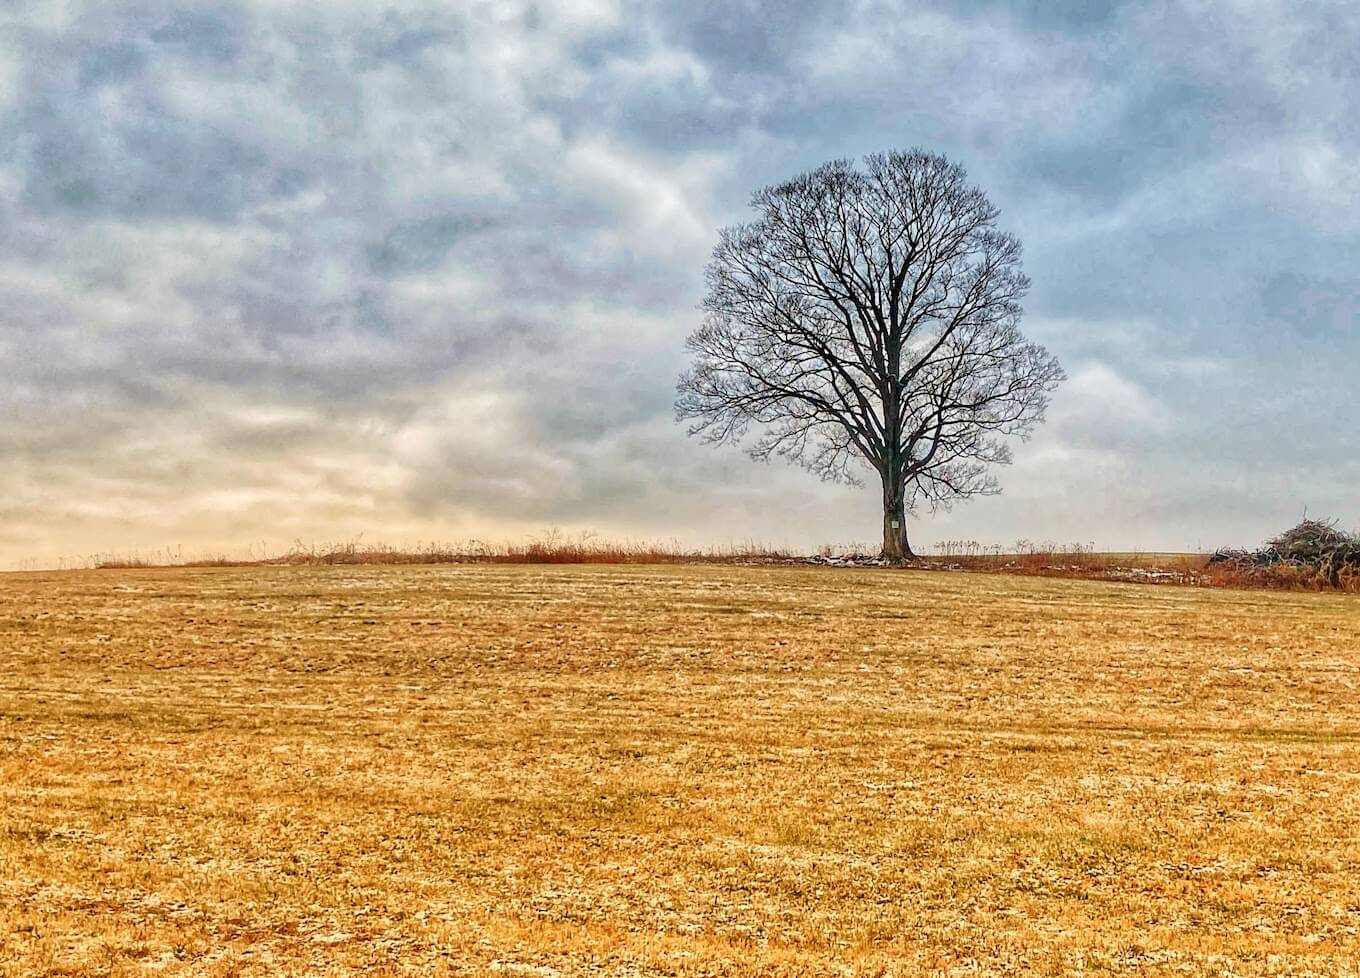 A photo of a lone tree in a field, used to demonstrate negative space in photography.